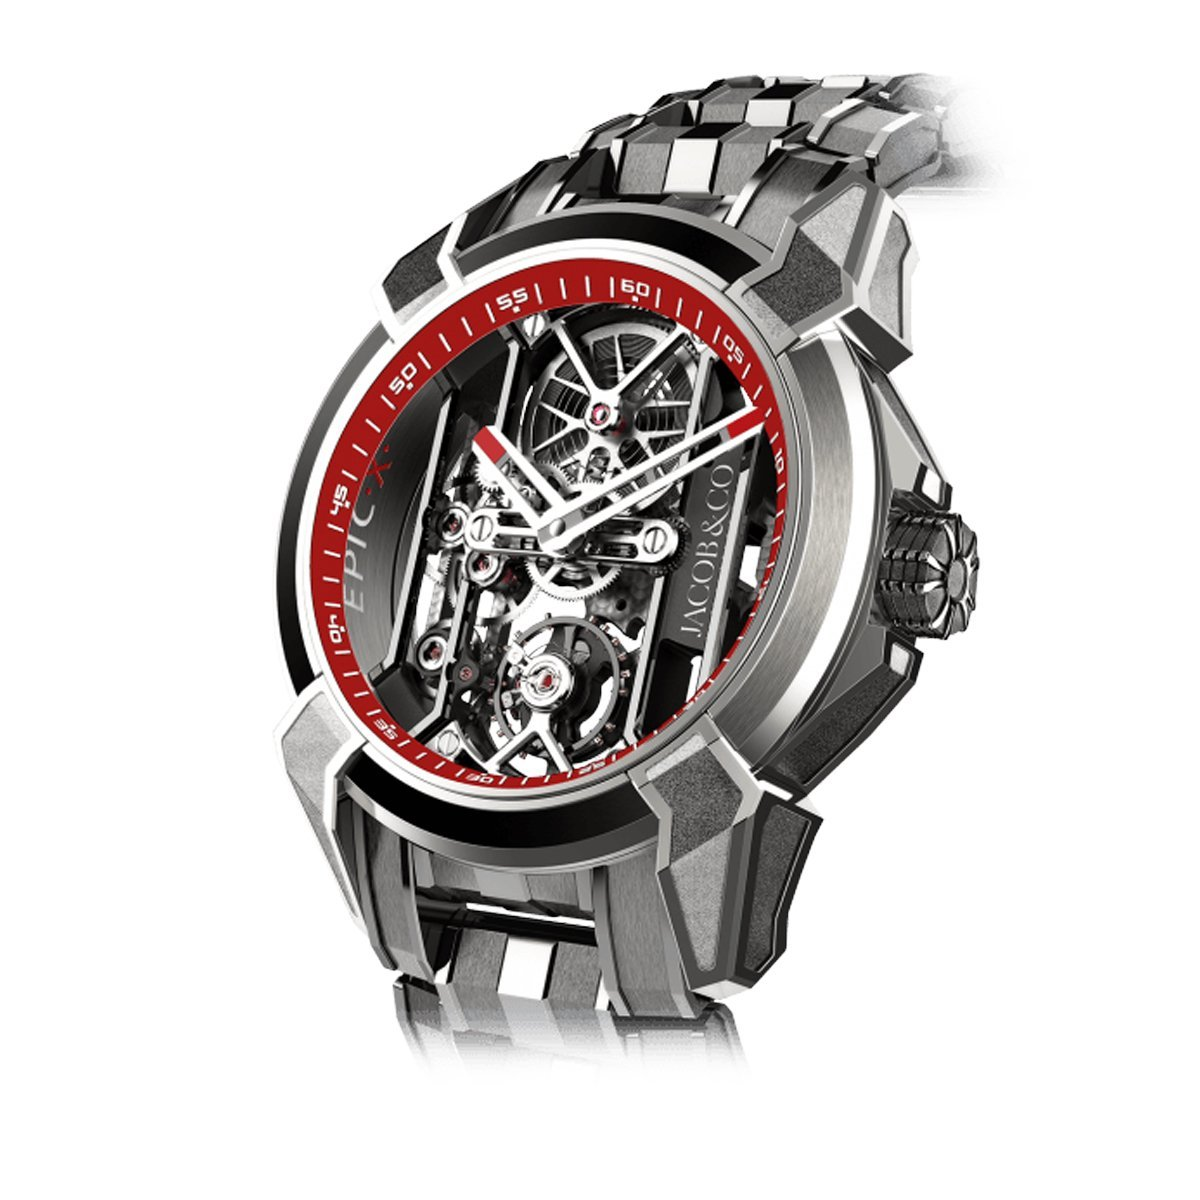 Jacob & Co. Epic X Skeleton Titanium Bracelet Red - Watches & Crystals